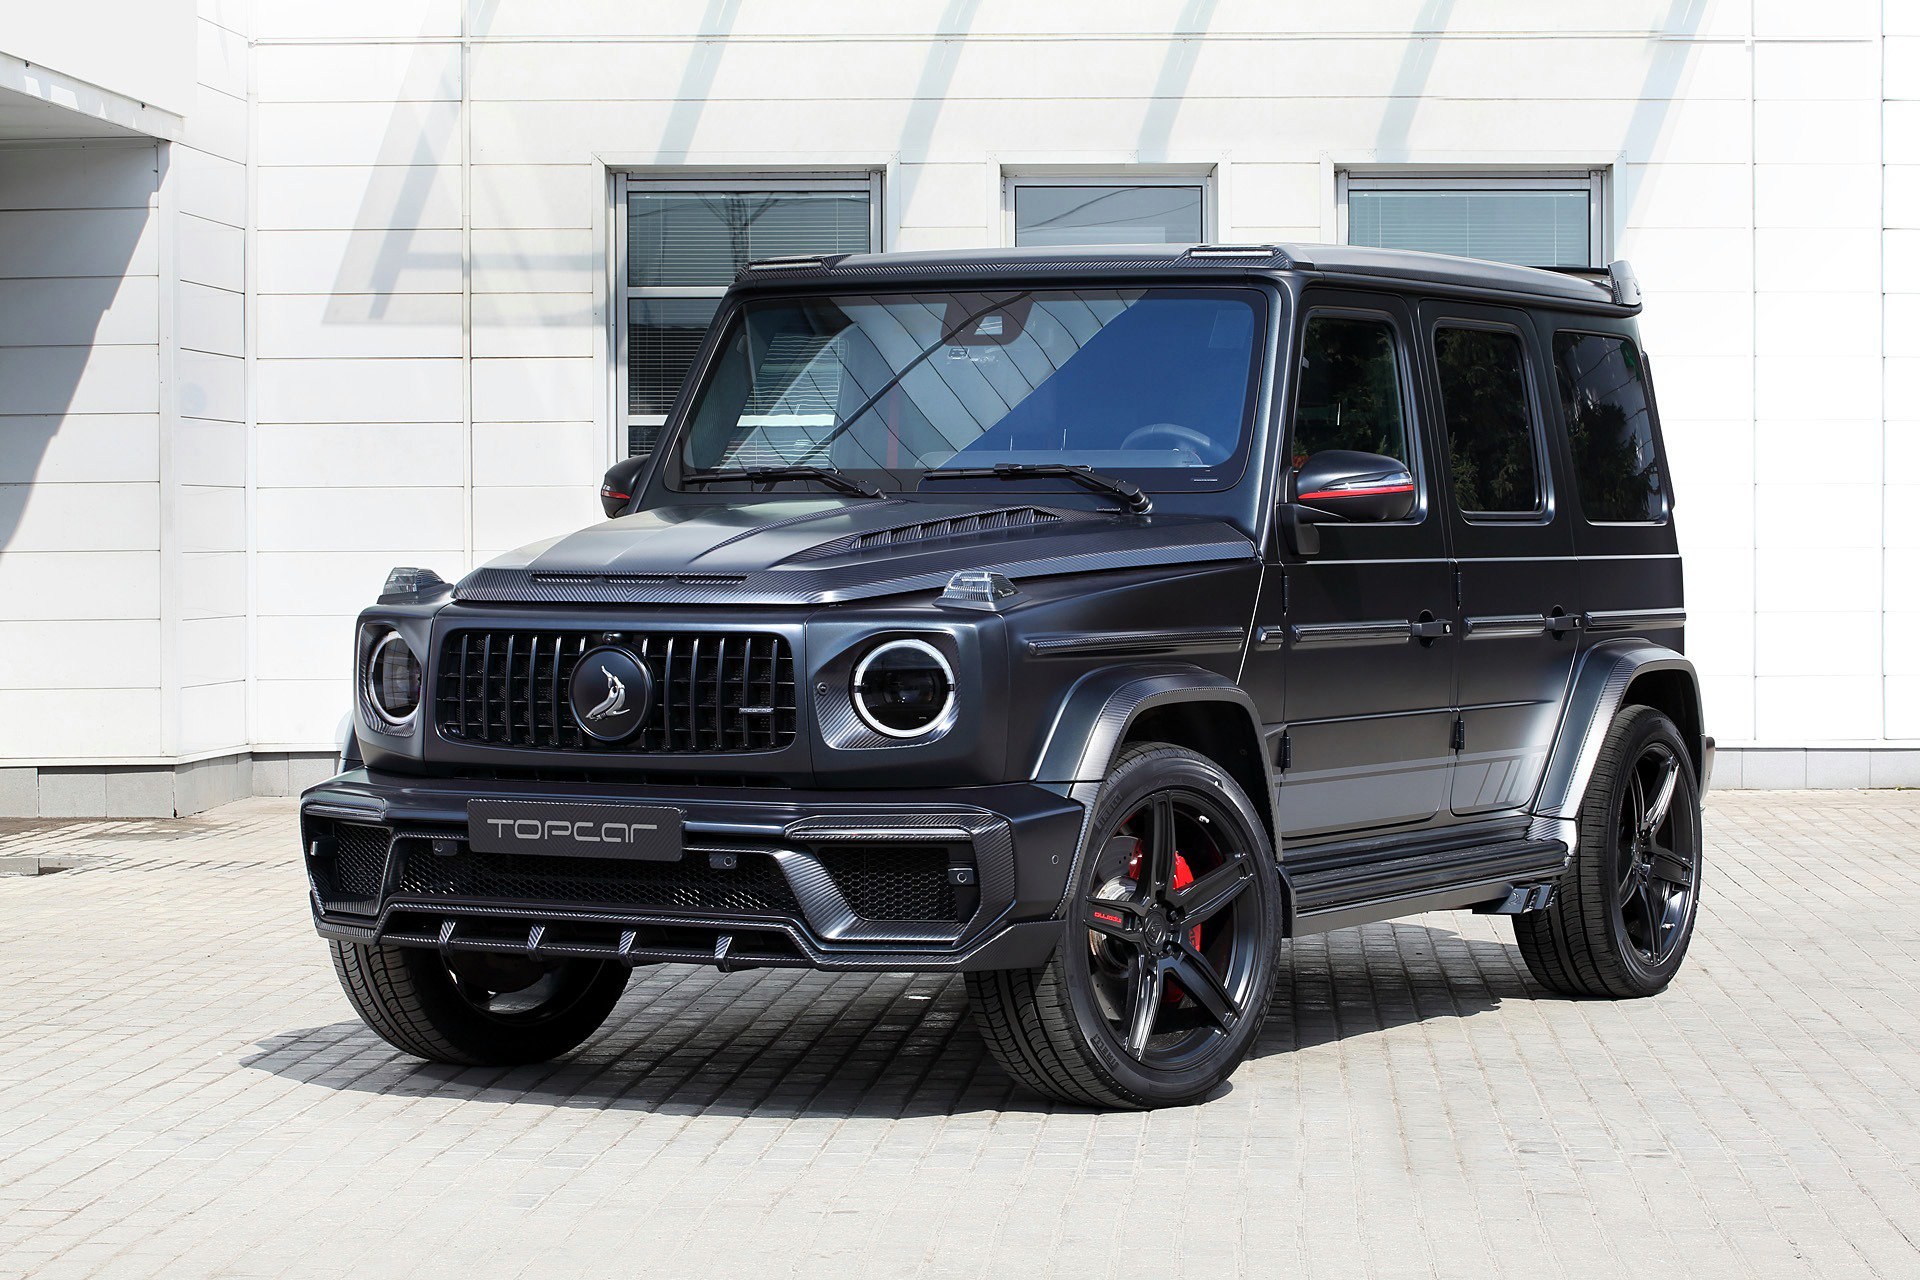 Russian tuner shop TopCar has made its popular Inferno body kit compatible with the 2019 Mercedes-AMG G63